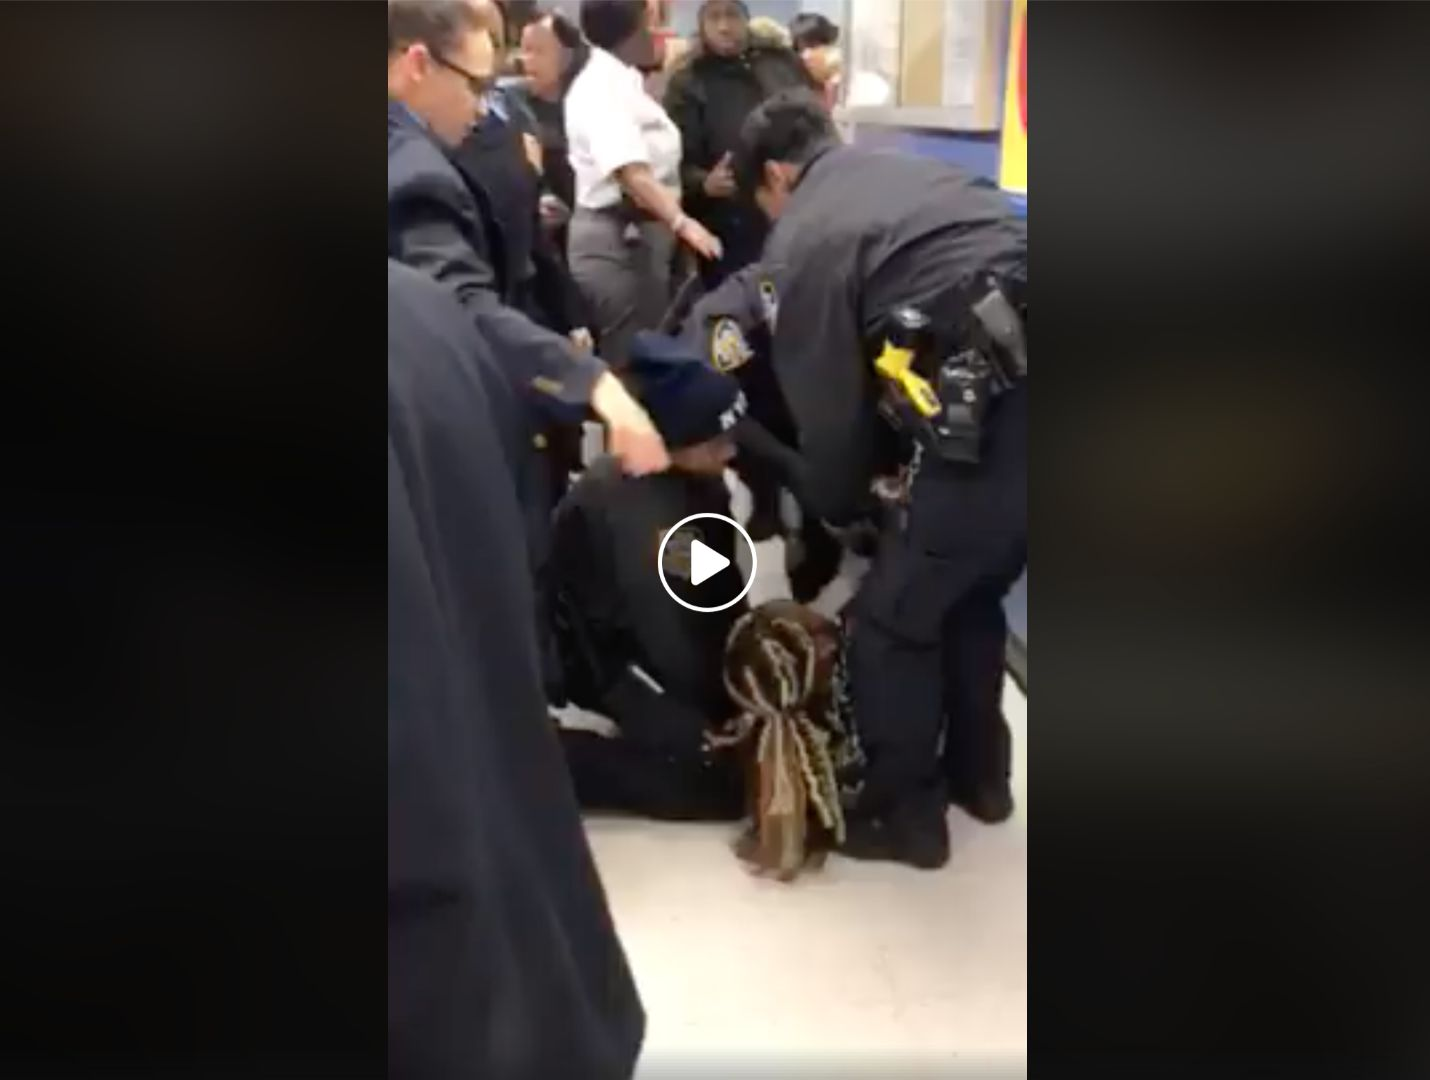 NYPD Police Caught Violently